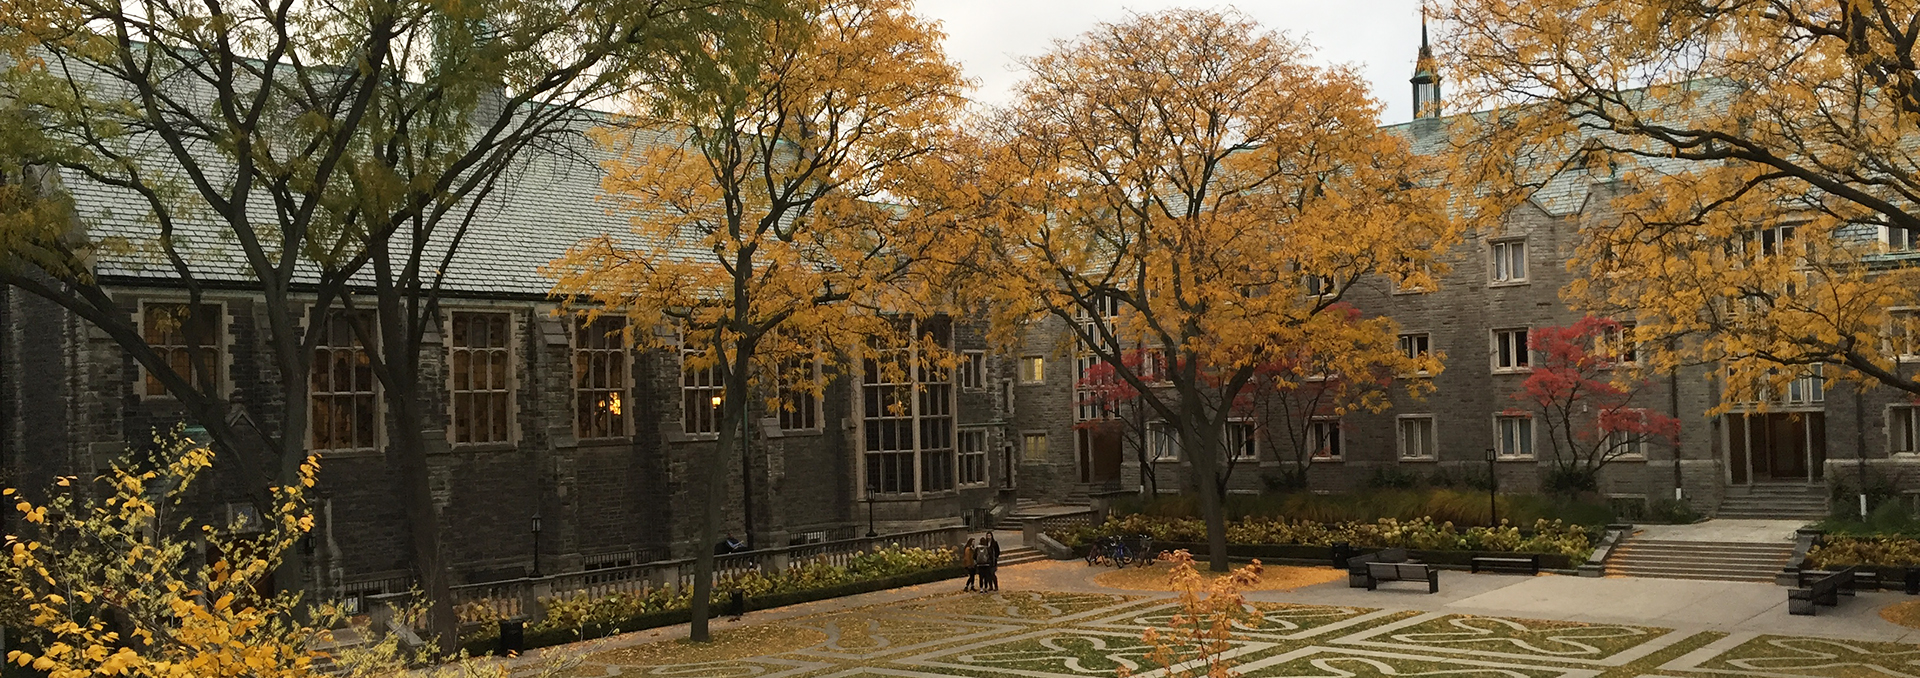 Trinity College Quad in the Fall